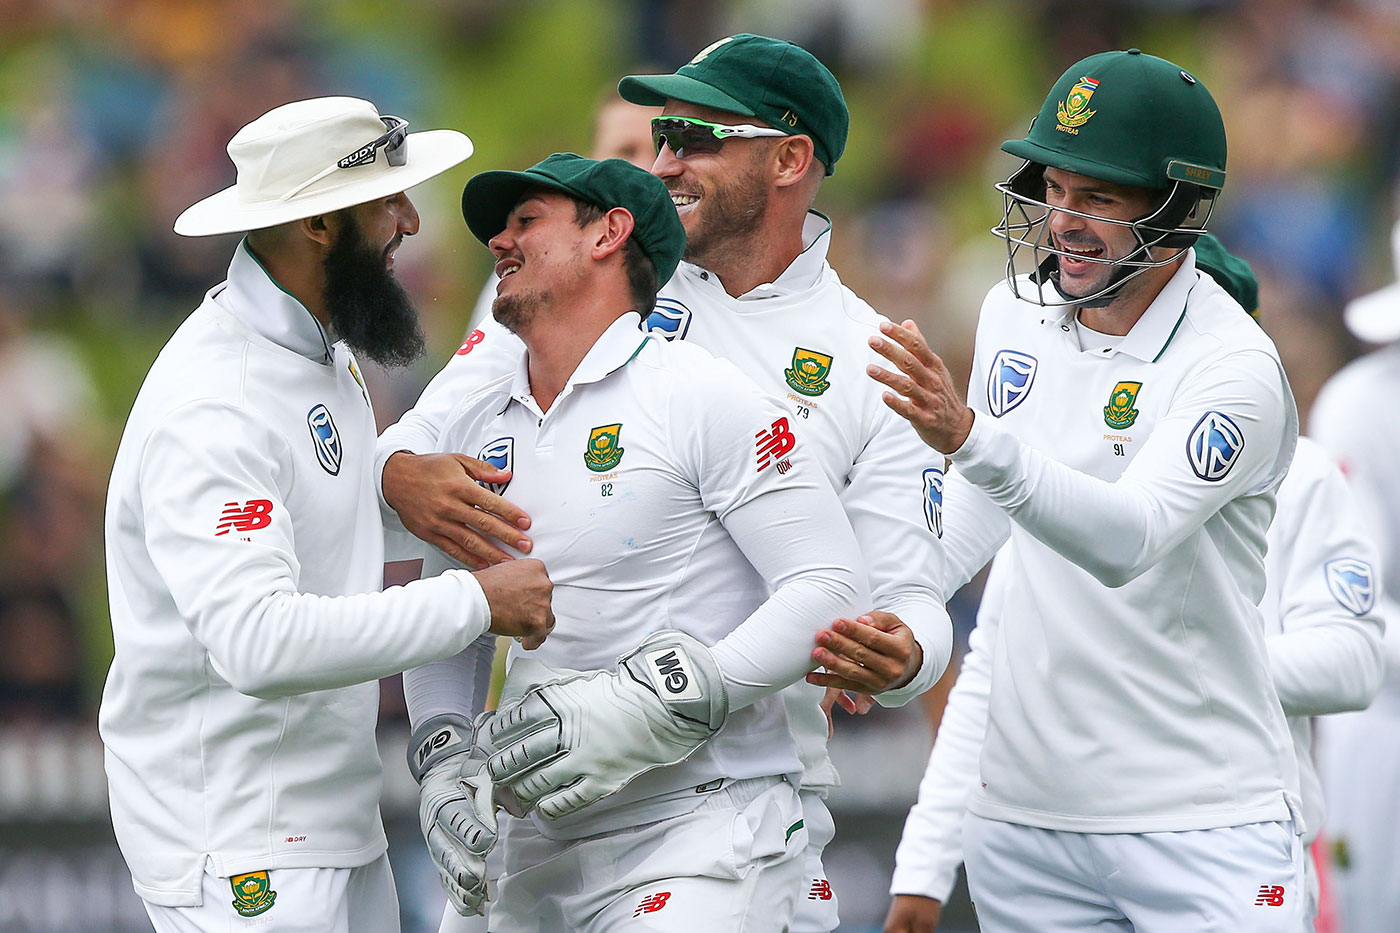 De Kock gets some love from his team-mates: (from left) Hashim Amla, Faf du Plessis and Stephen Cook